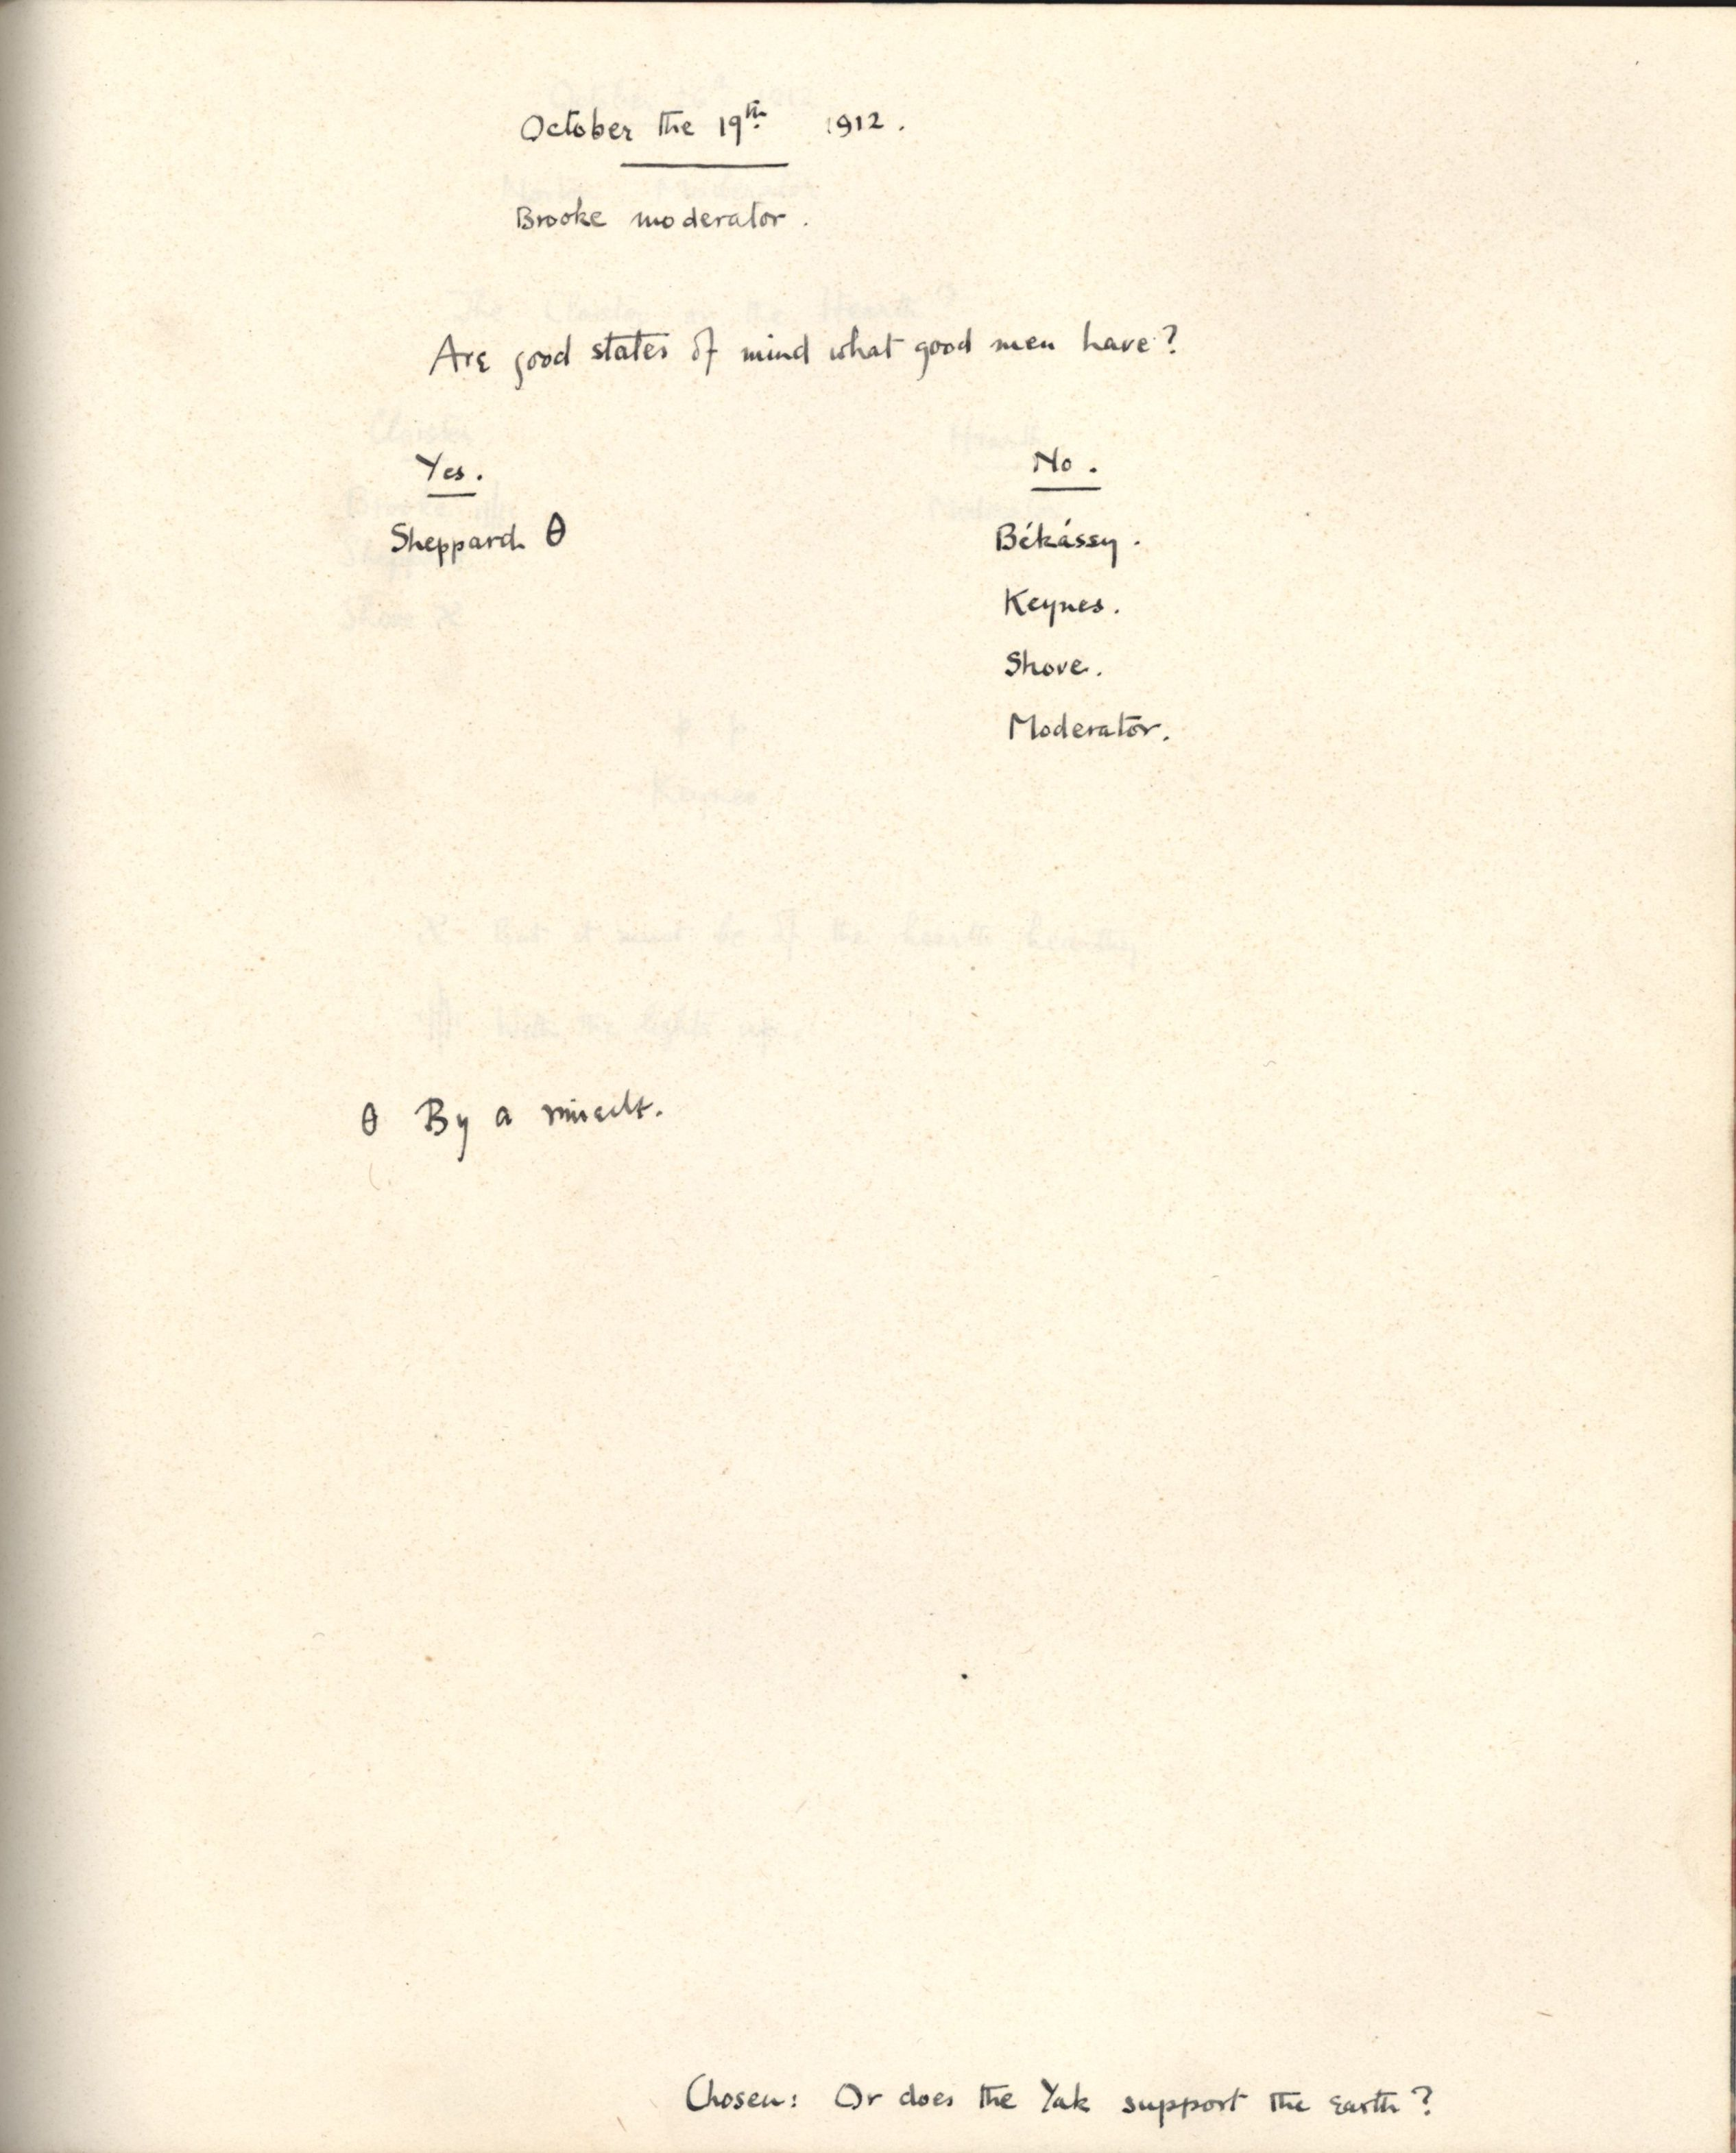 'Are good states of mind what good men have?', Apostles minutes with Brooke as moderator, dated 19 October 1912. [KCAS/39/1/15]